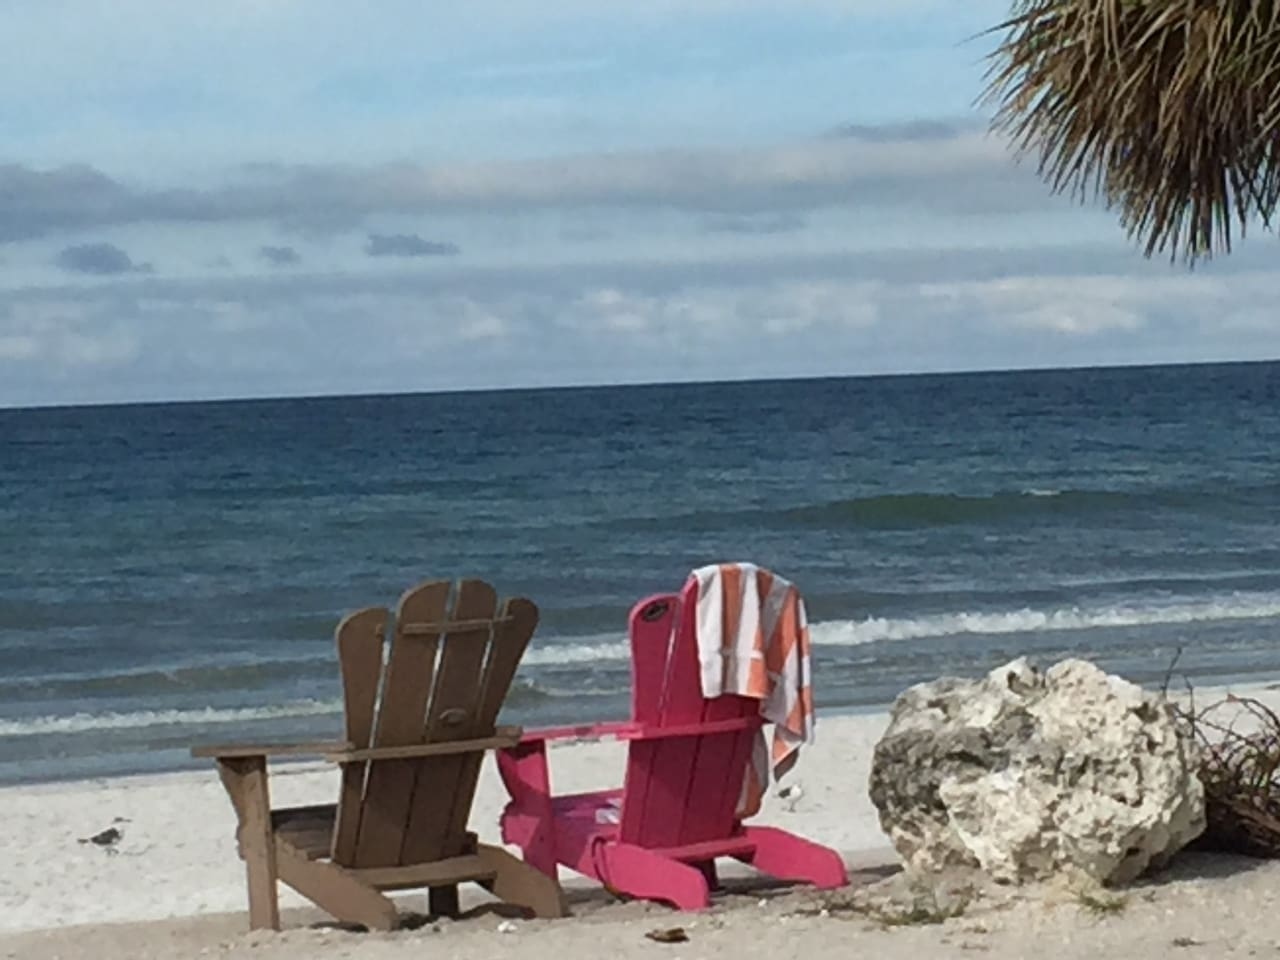 Imagine me and you, and you and me!... enjoying the sun, sand and surf of Pass-a-grille Beach